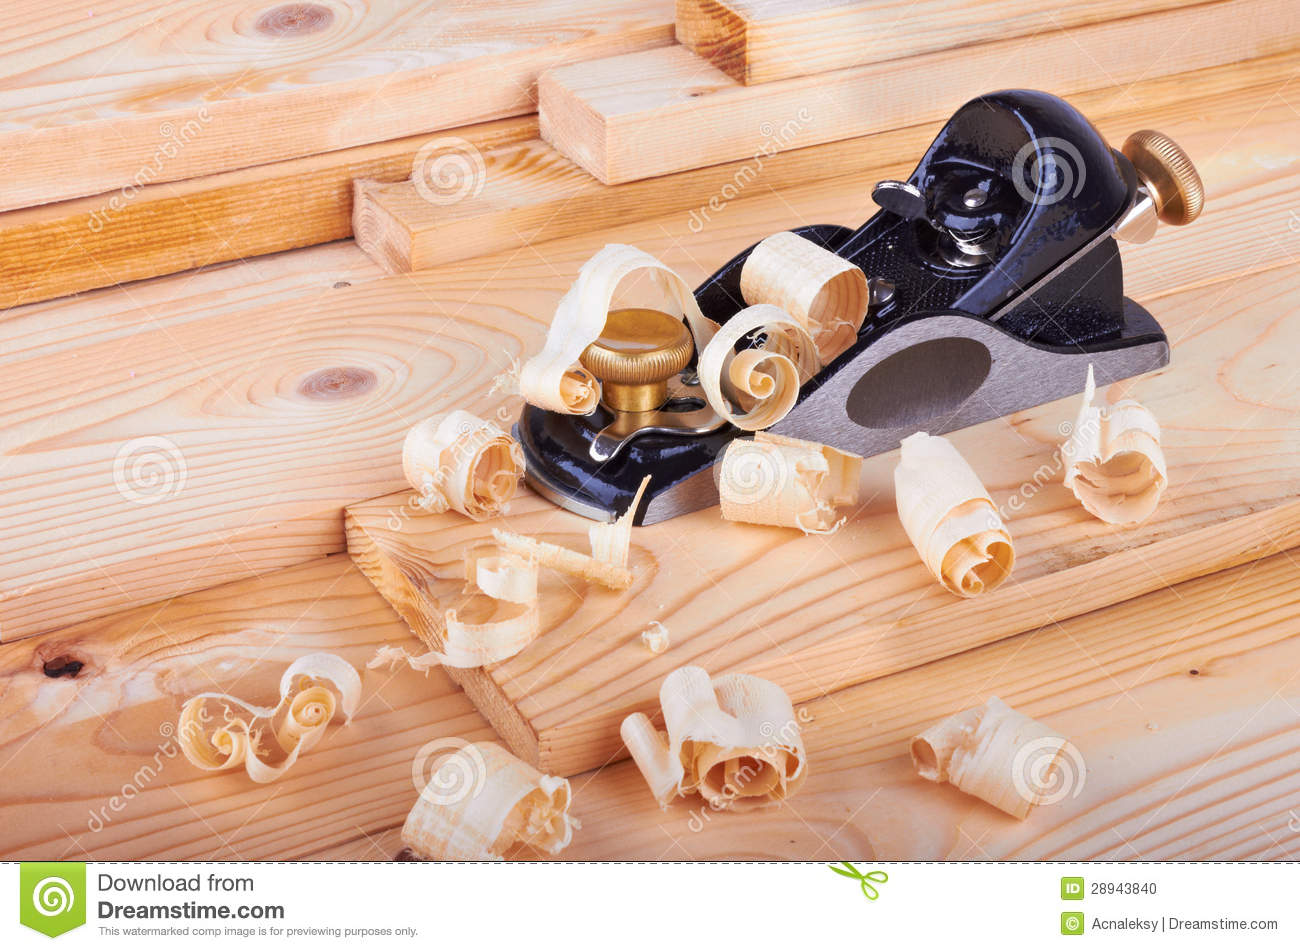 Small Block Plane And Wood With Shavings Stock Photo - Image: 28943840